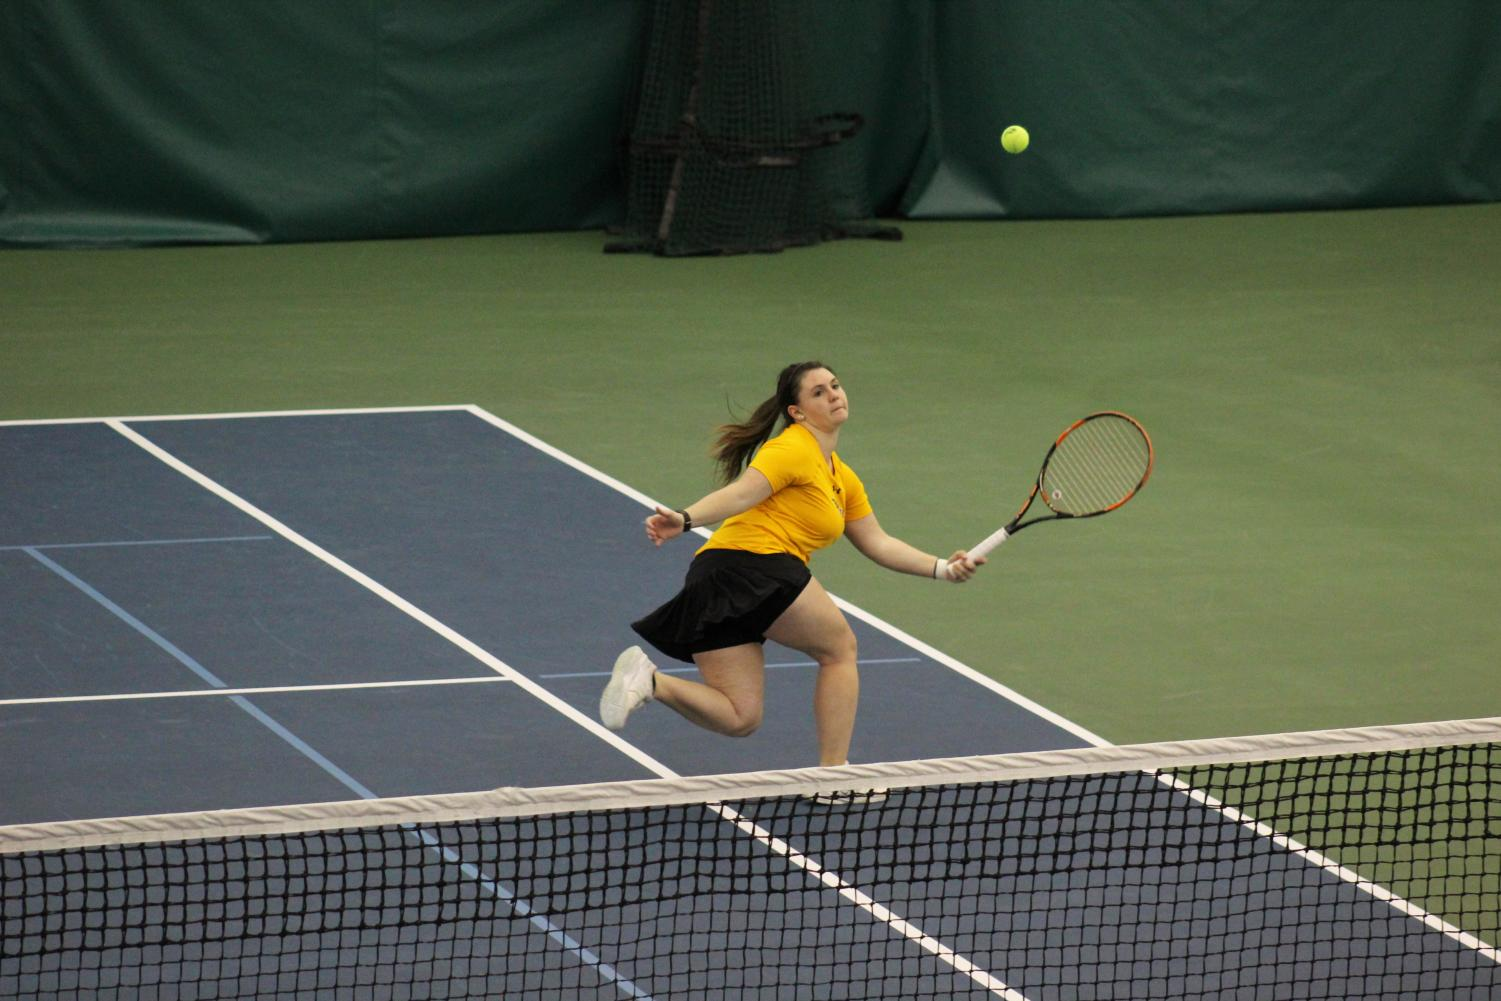 Sophomore Samantha Koppa lunges to return a ball during Sunday's match against Carthage College in Neenah. So far on the season, Koppa has a record of 11 wins and 8 losses in singles play, while she has earned 8 wins in doubles matches.